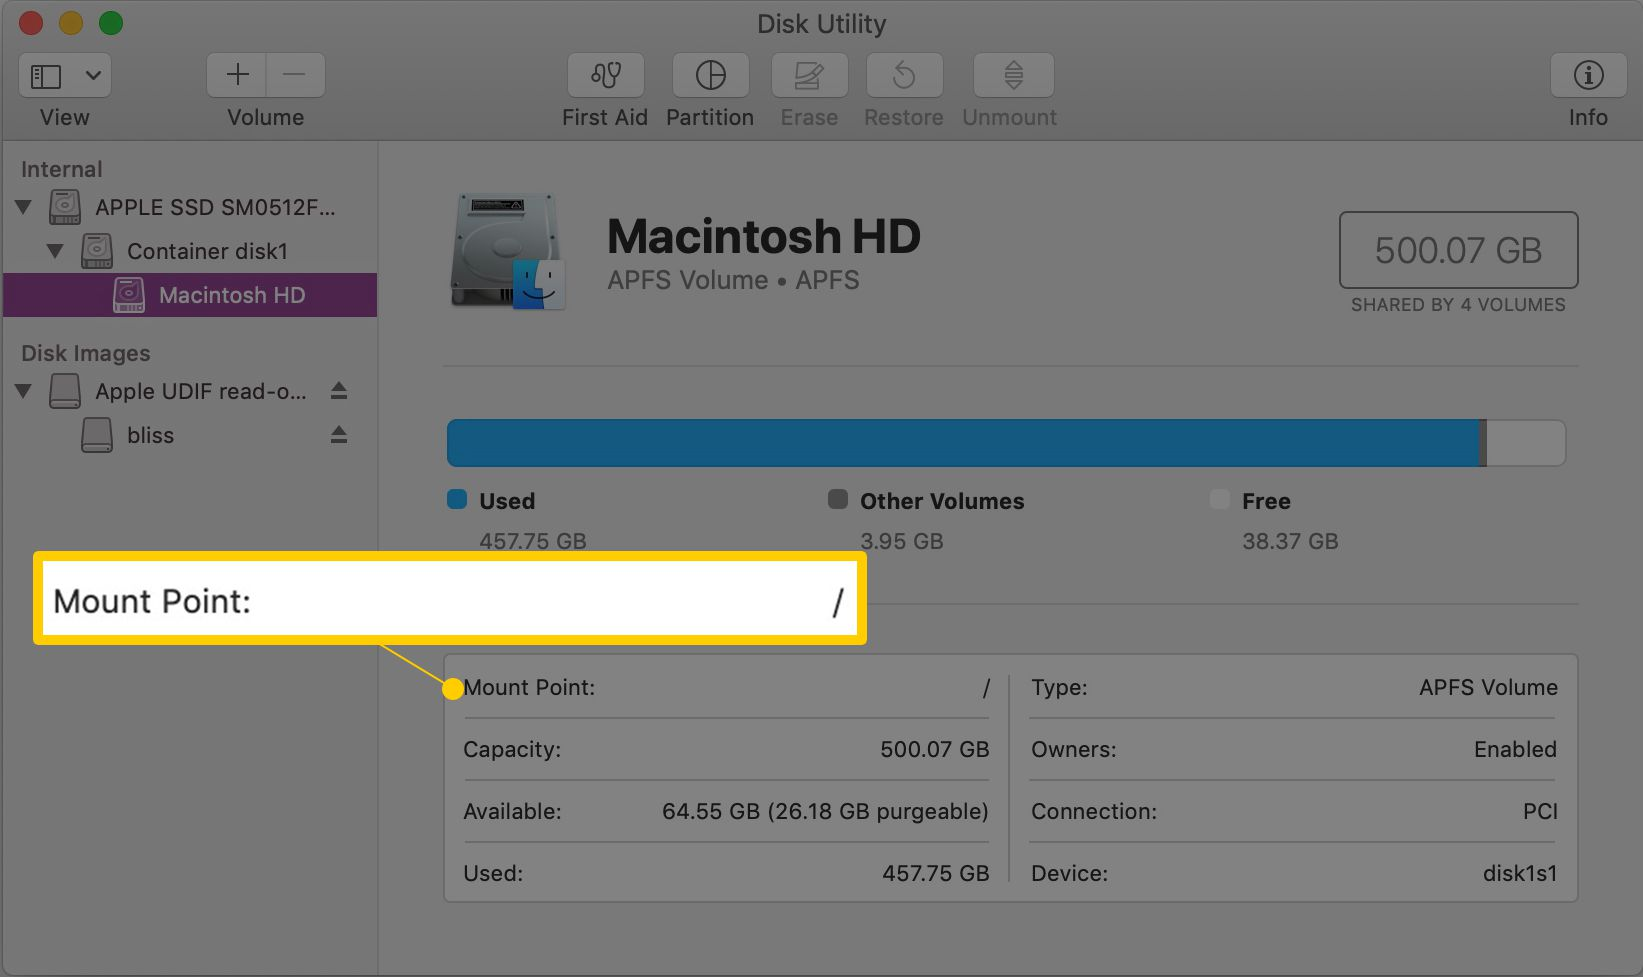 Mount Point: / in Disk Utility